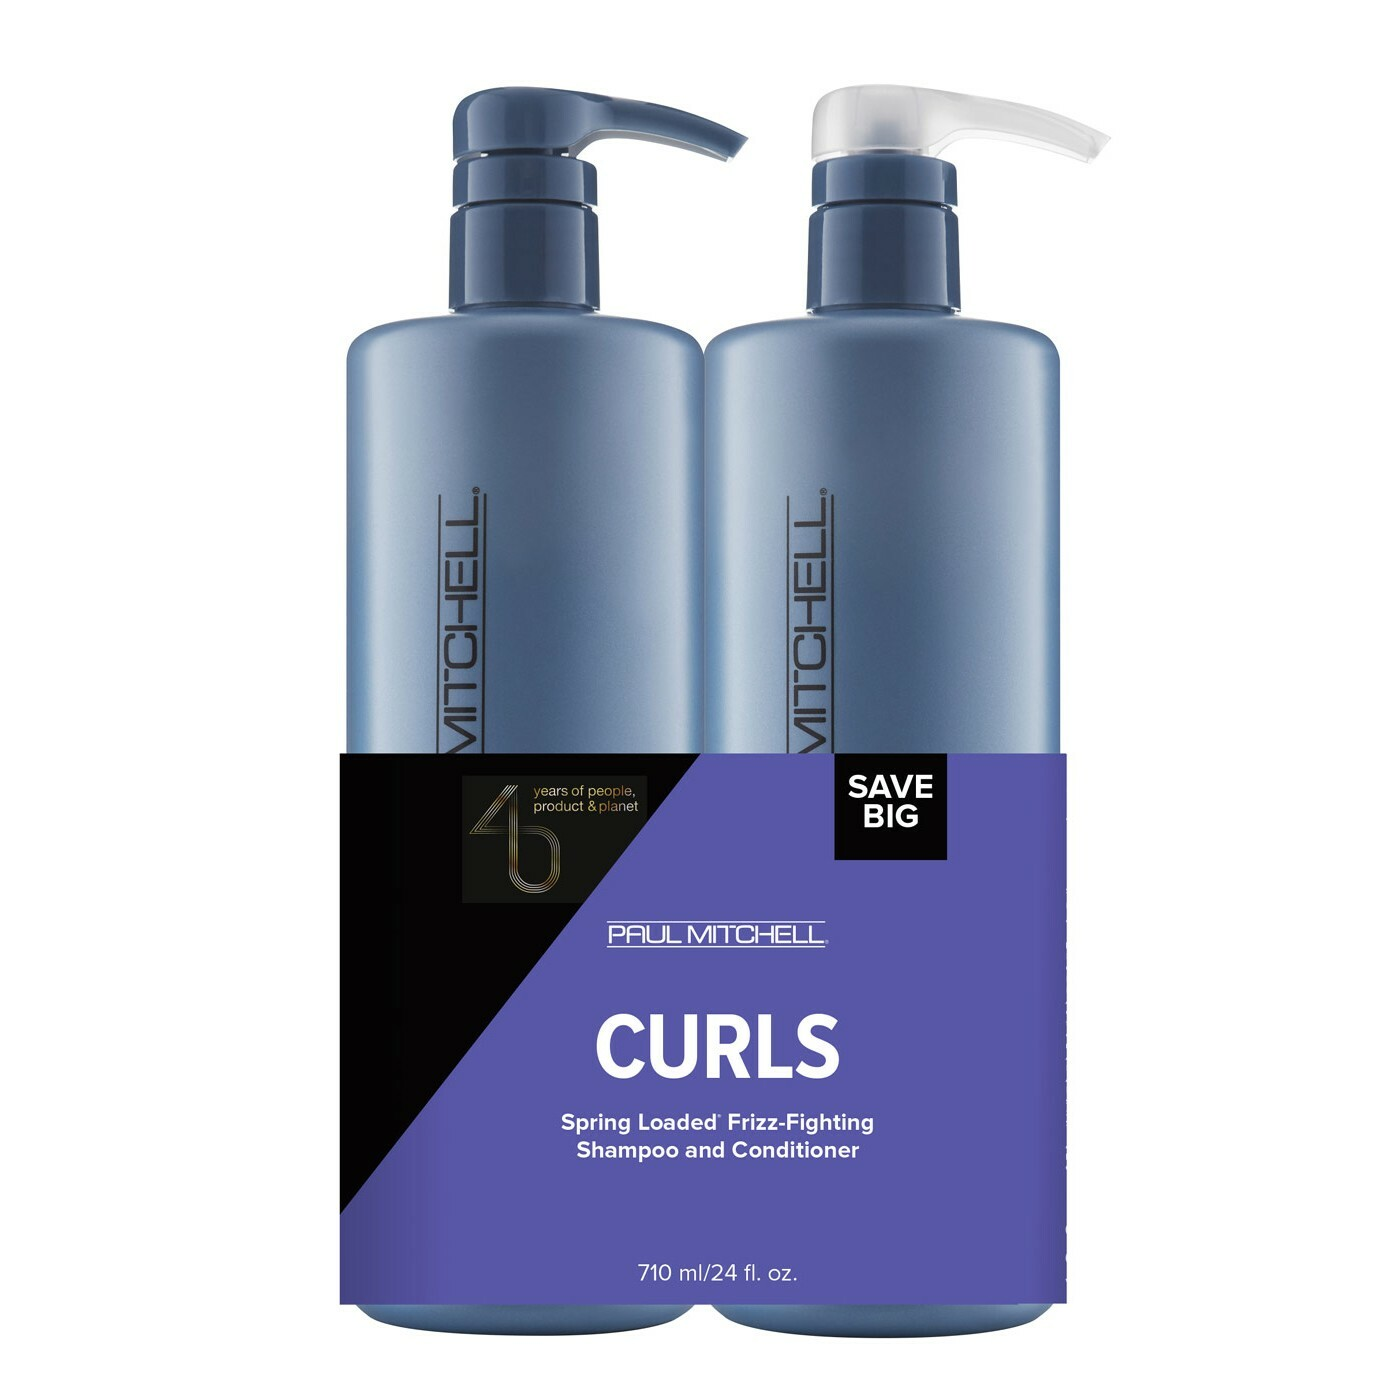 Paul Mitchell Save Big Curls - Spring Loaded Frizz-Fighting Shampoo 710ml + Spring Loaded Frizz-Fighting Conditioner 710ml